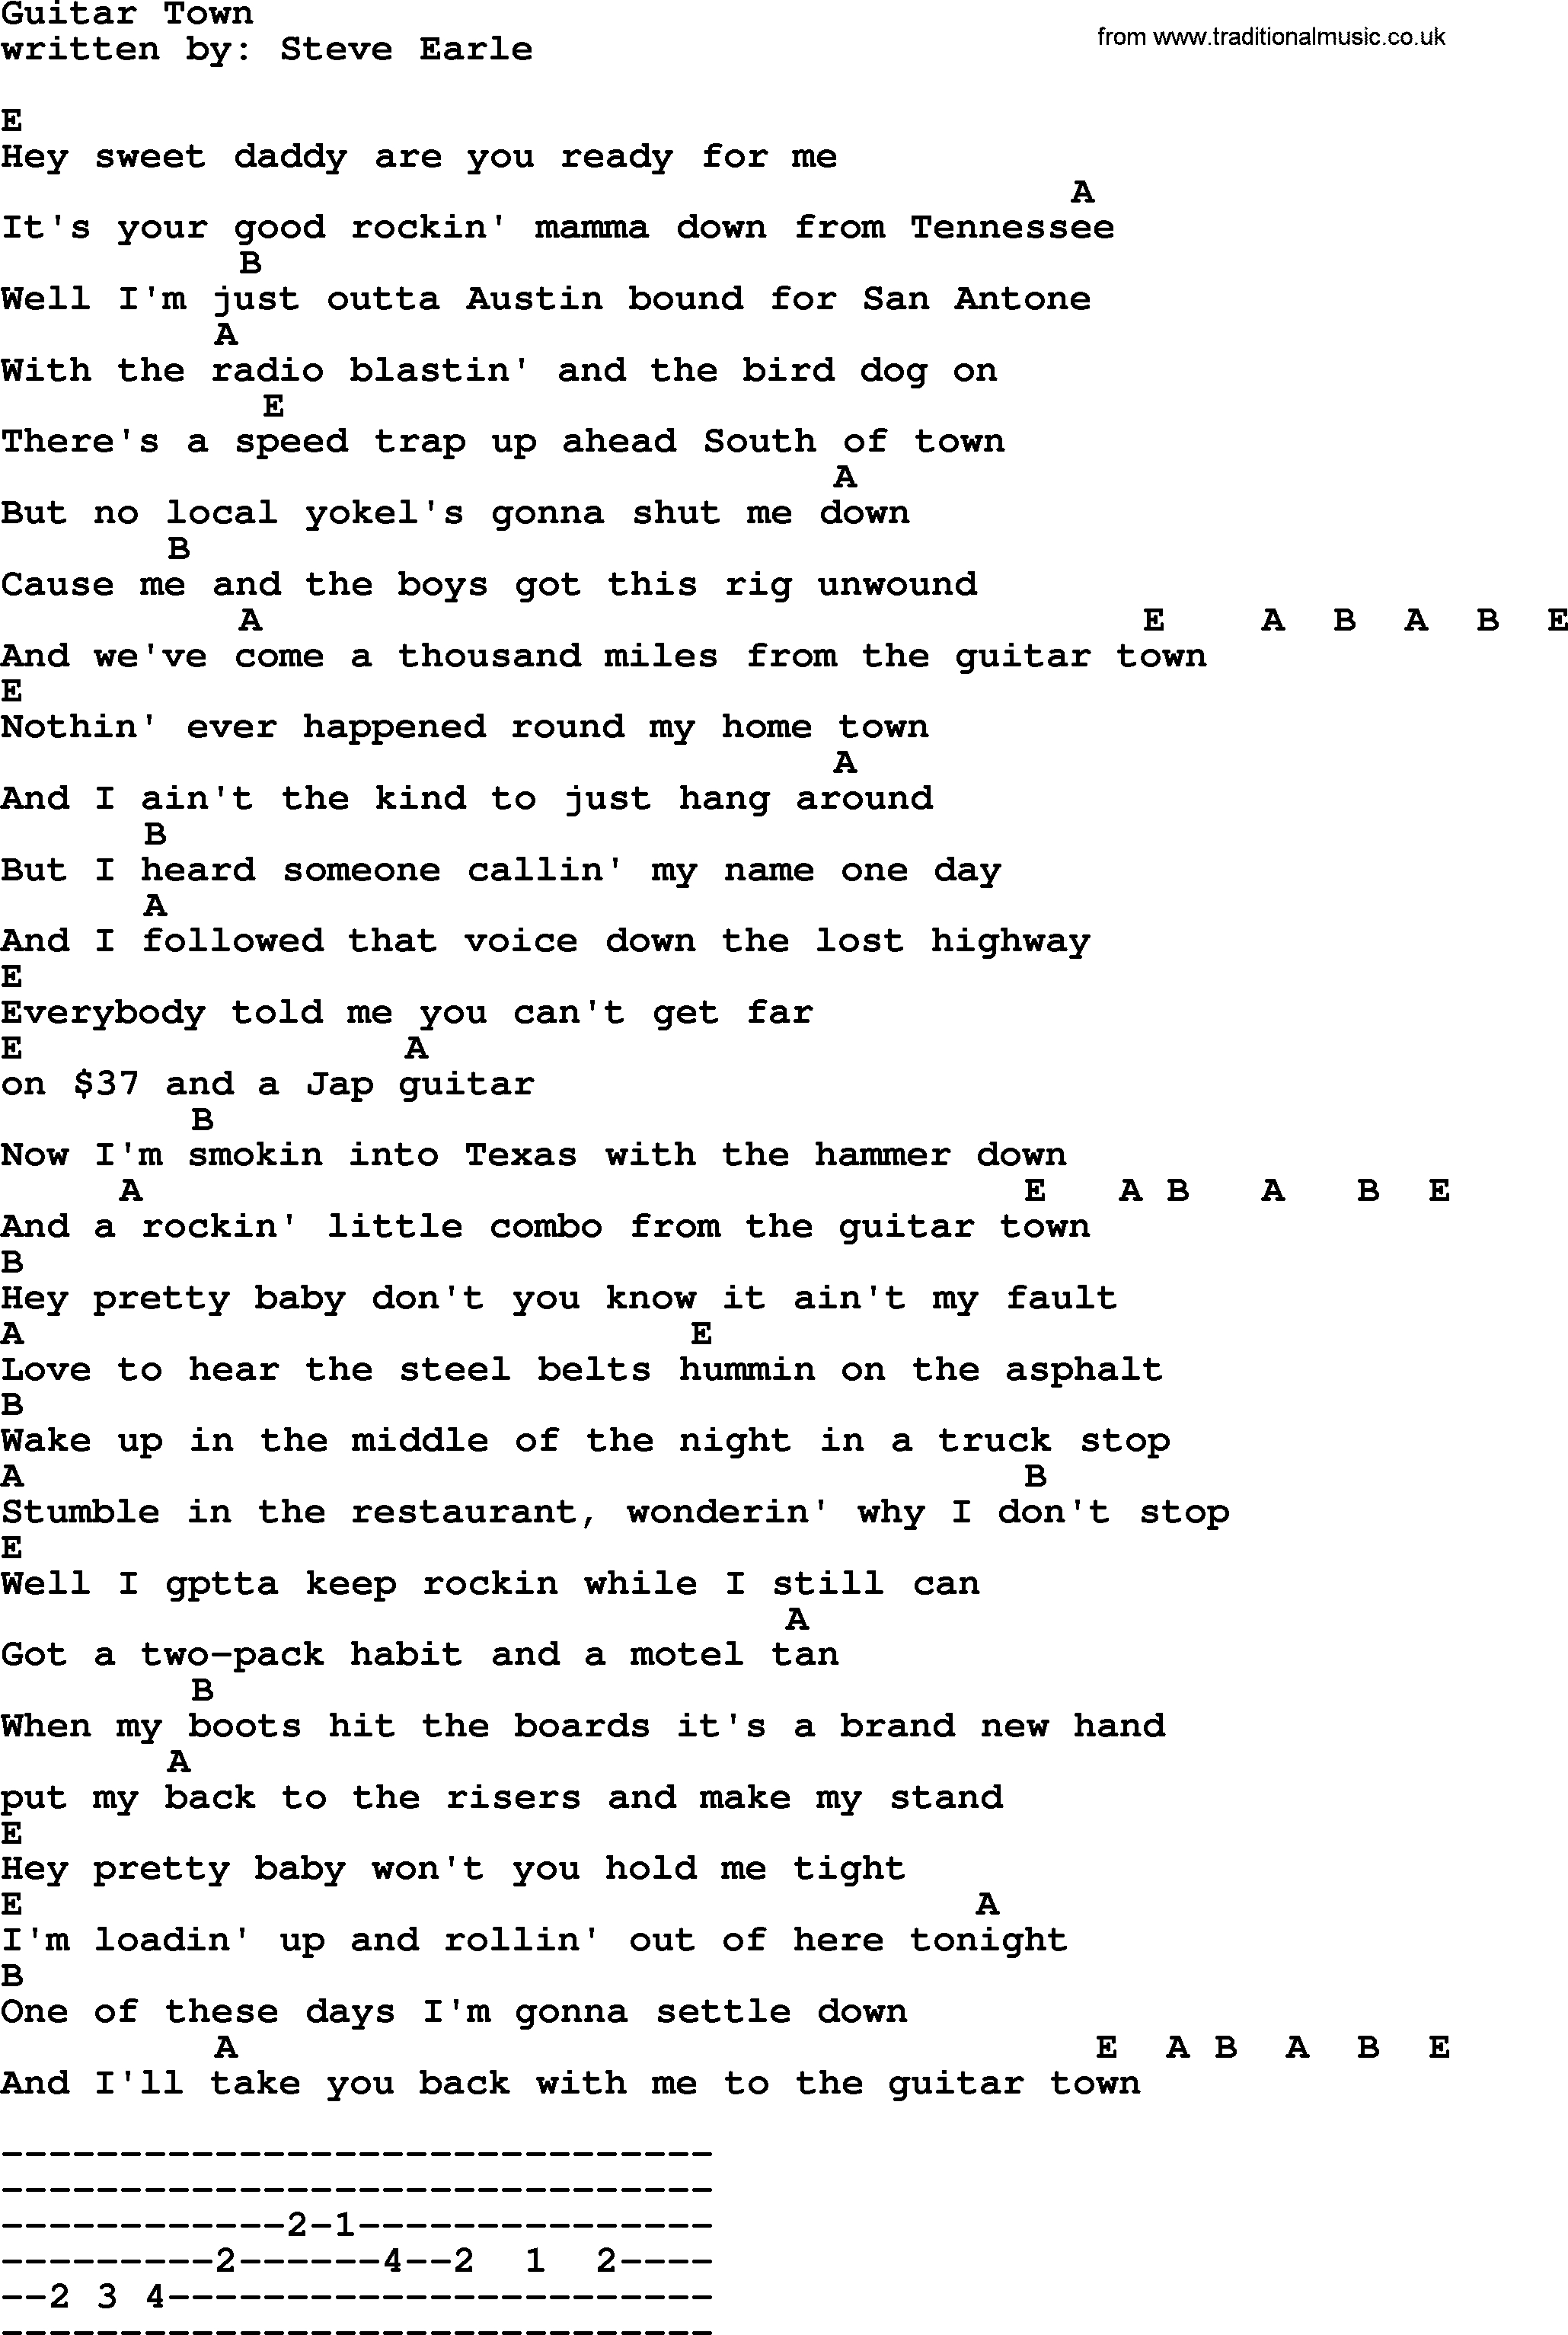 Lost Boy Chords Emmylou Harris Song Guitar Town Lyrics And Chords